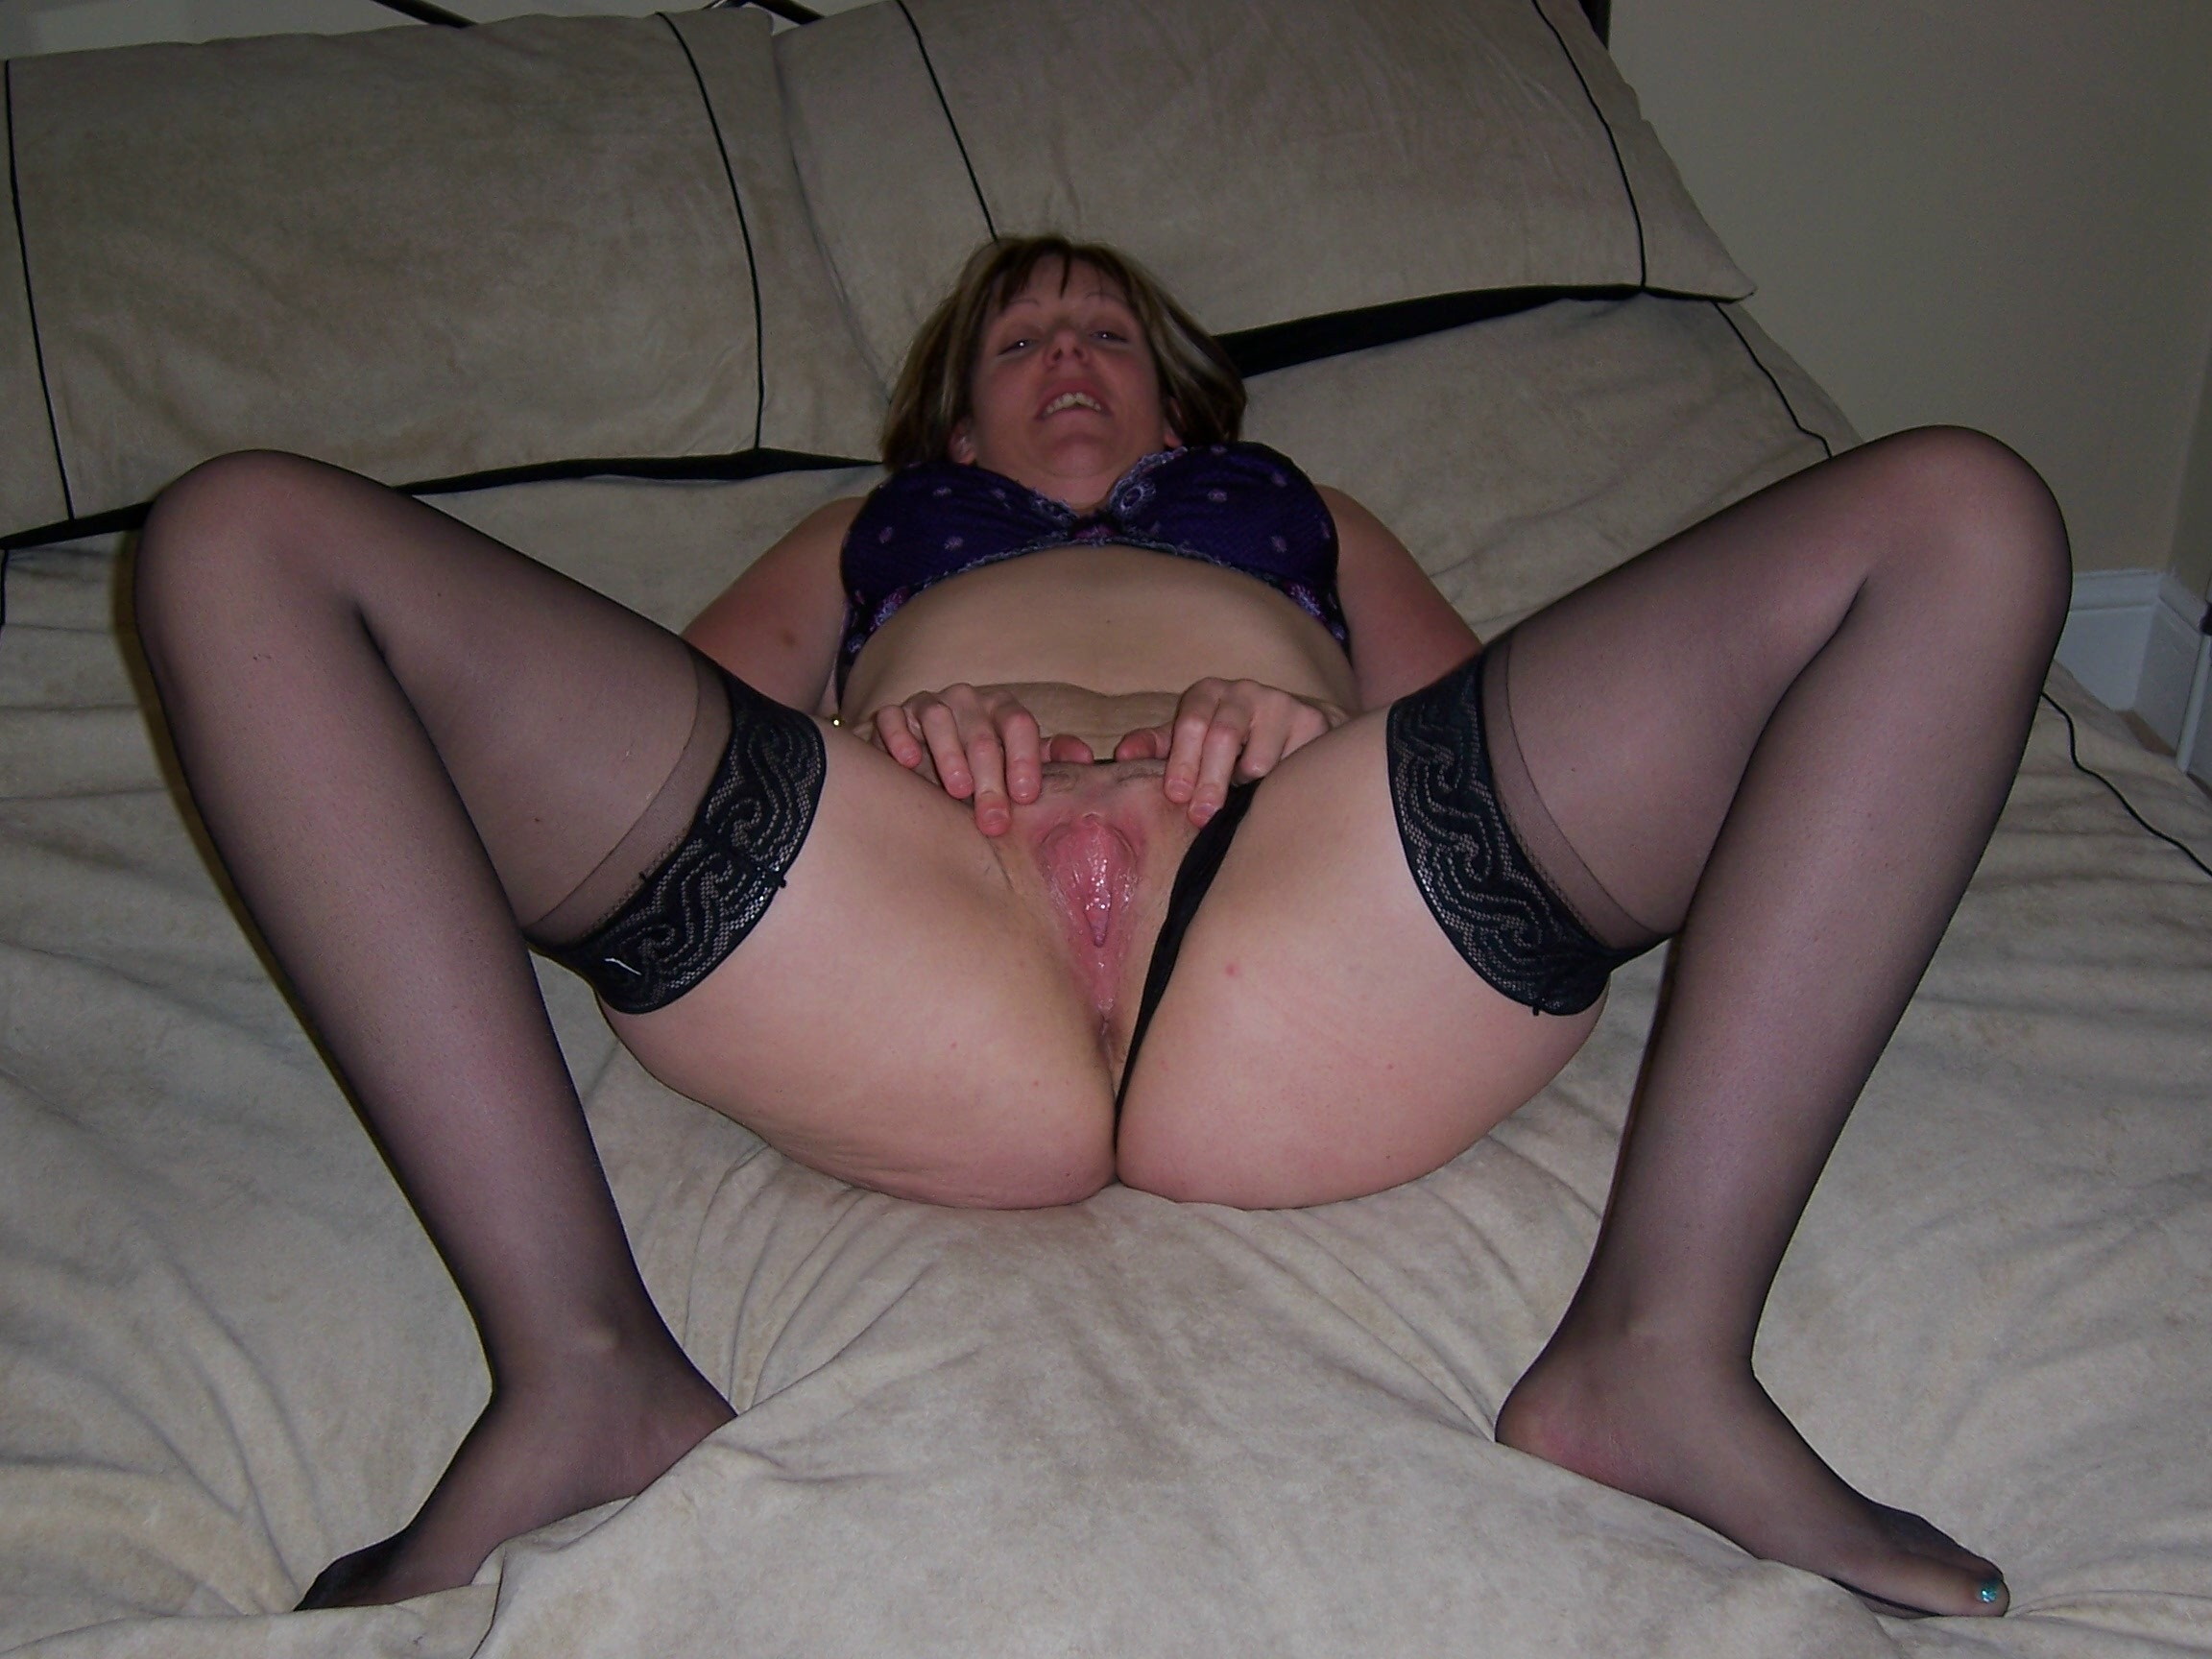 55 year old slutwife amp cuckhub - 1 part 5